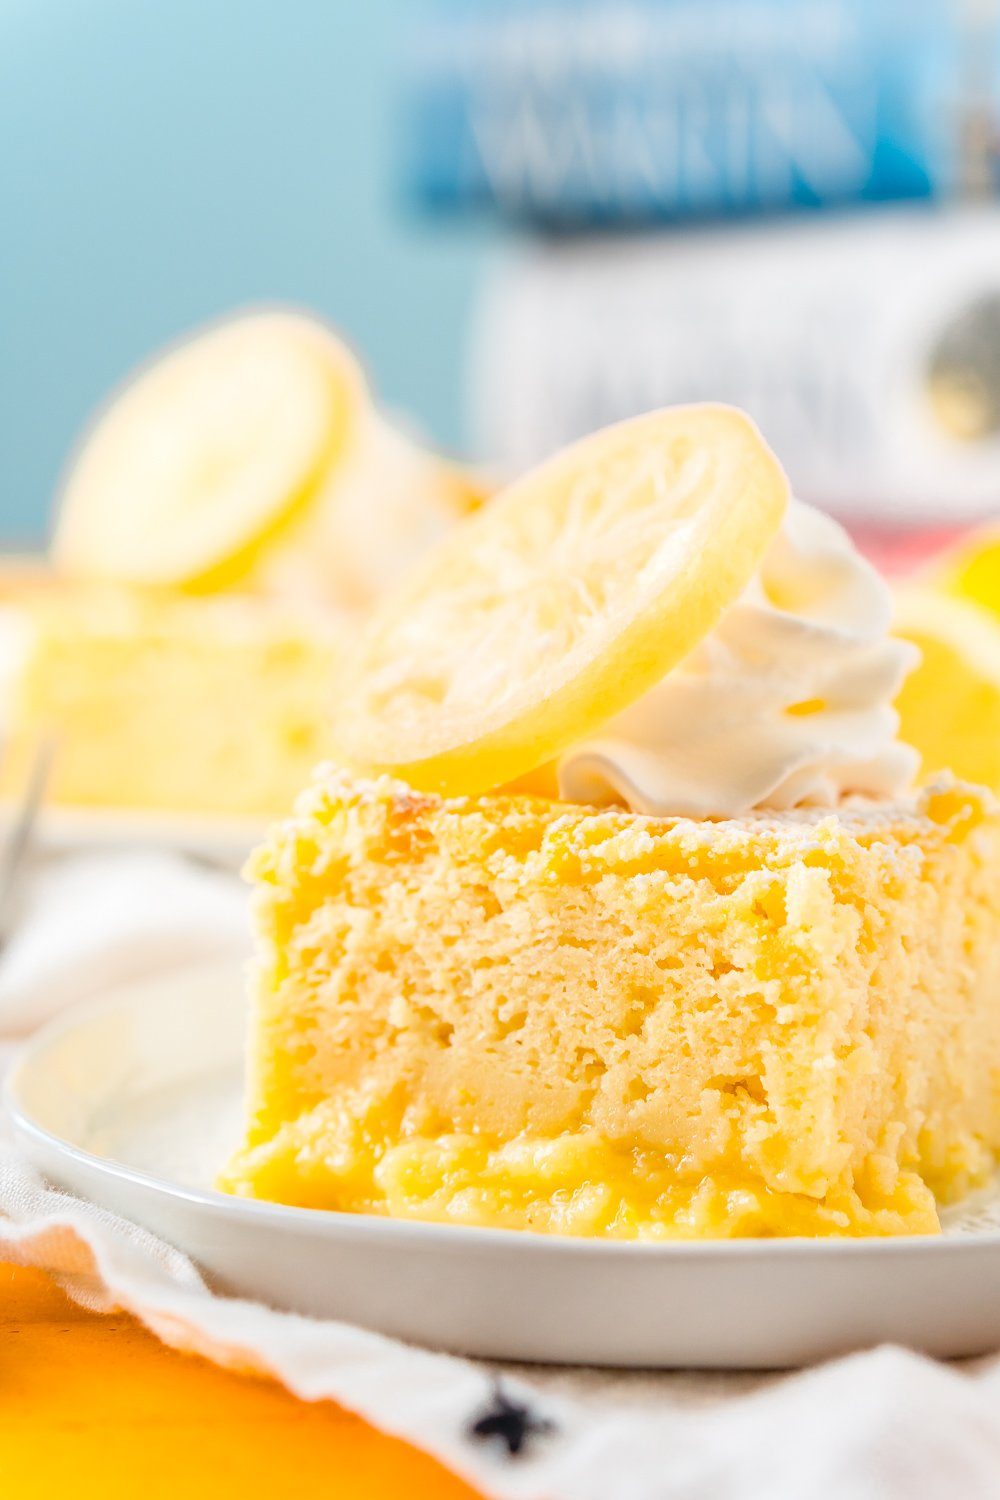 Close up photo of a slice of lemon cake on a small white plate.